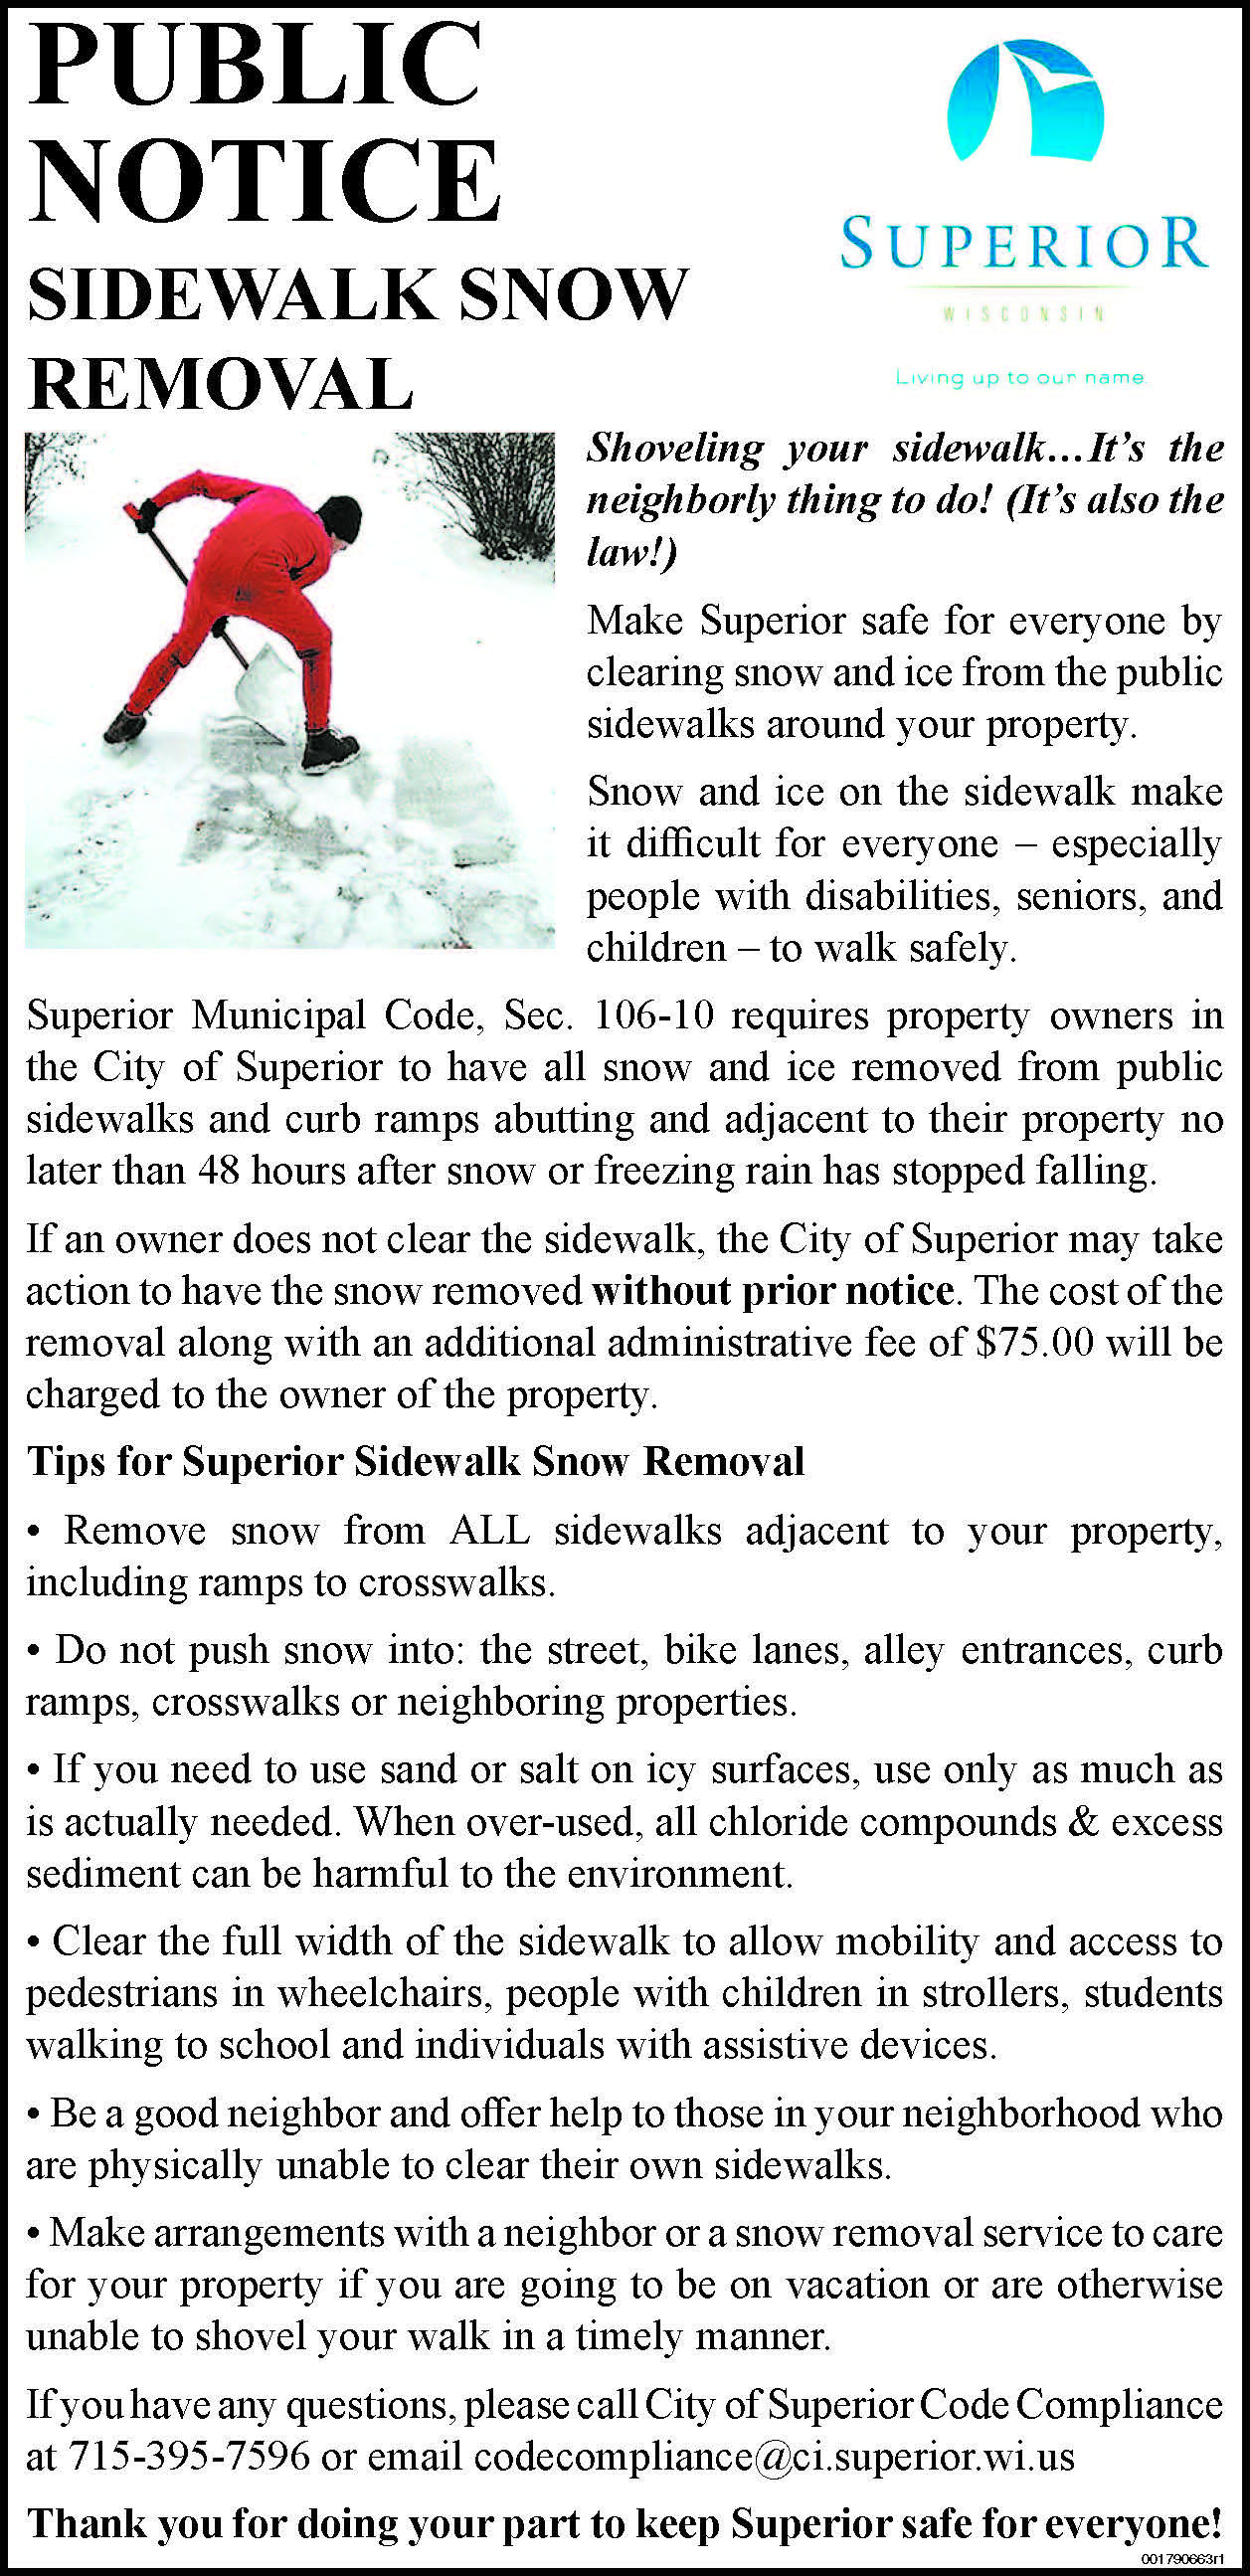 Public Notice regarding snow shoveling that describes how shoveling must be done.